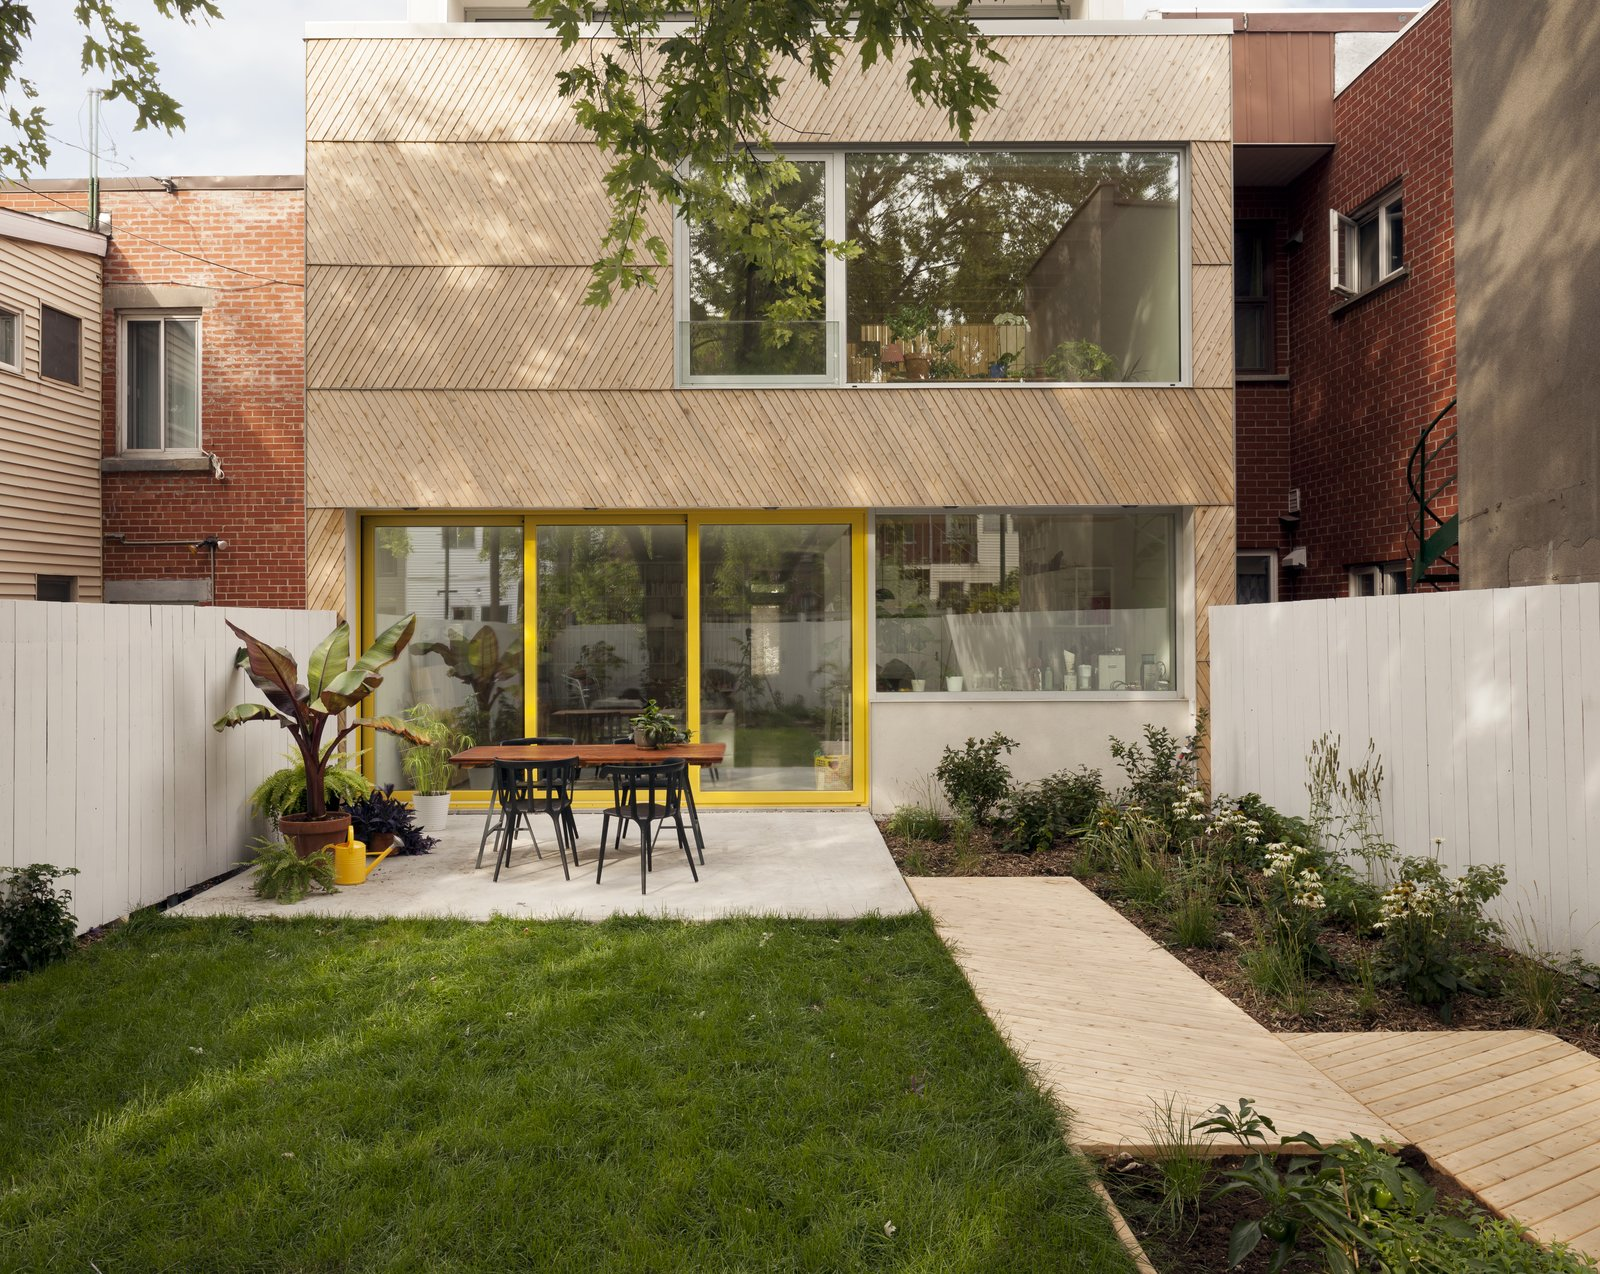 Before & After: A Century-Old Row House in Montreal Gets a Glorious Renovation